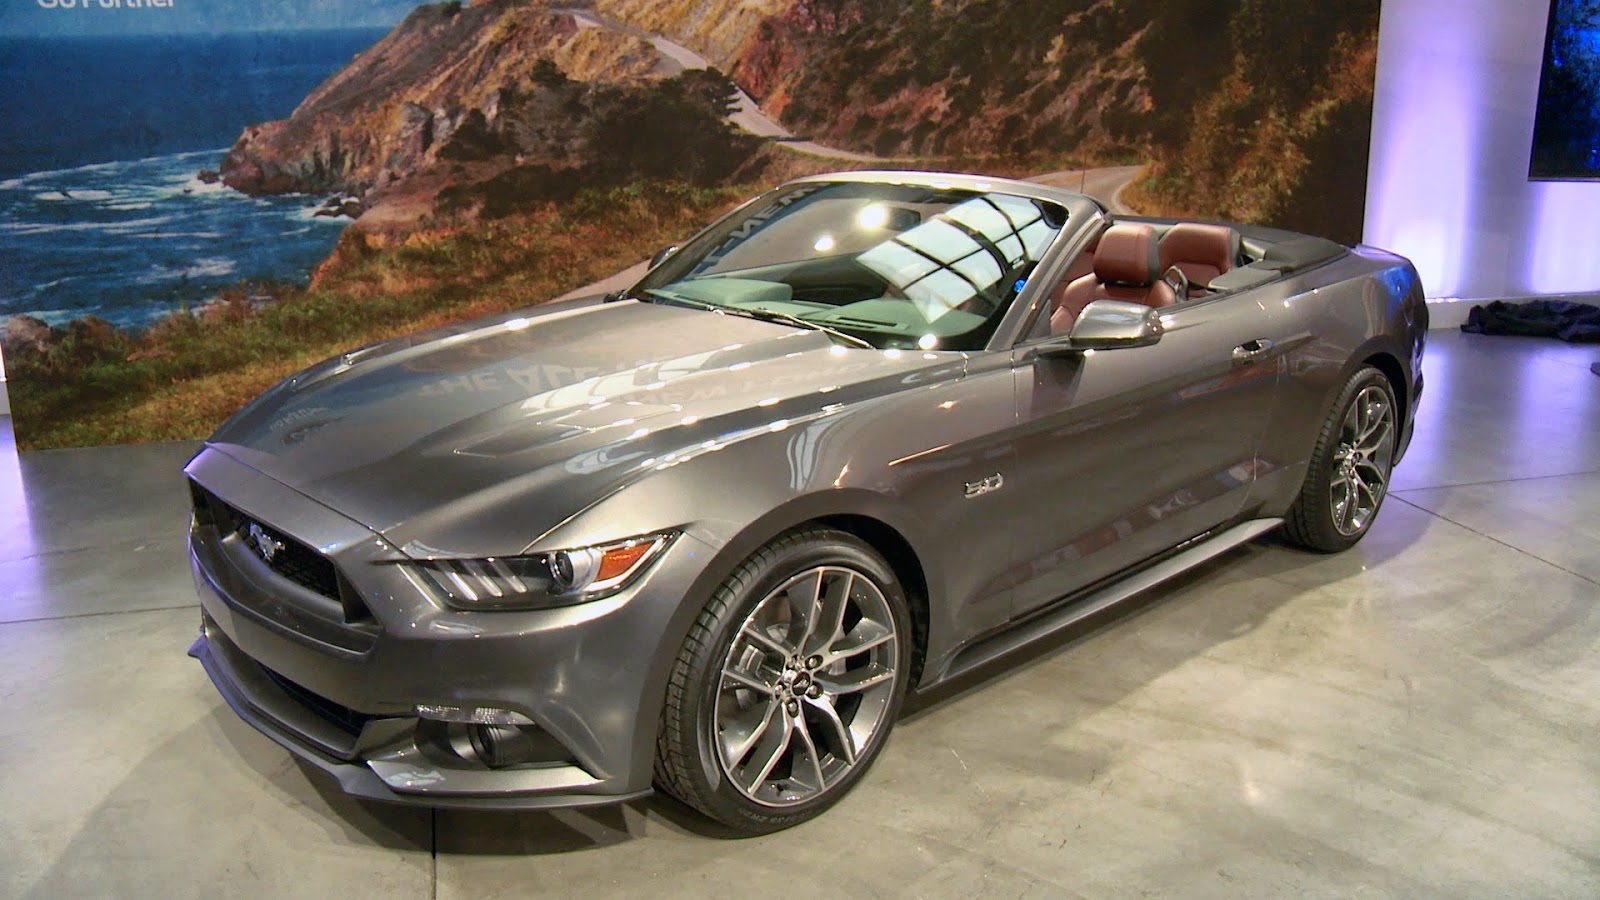 2015 mustang gt convertible technical review and price techgangs. Black Bedroom Furniture Sets. Home Design Ideas